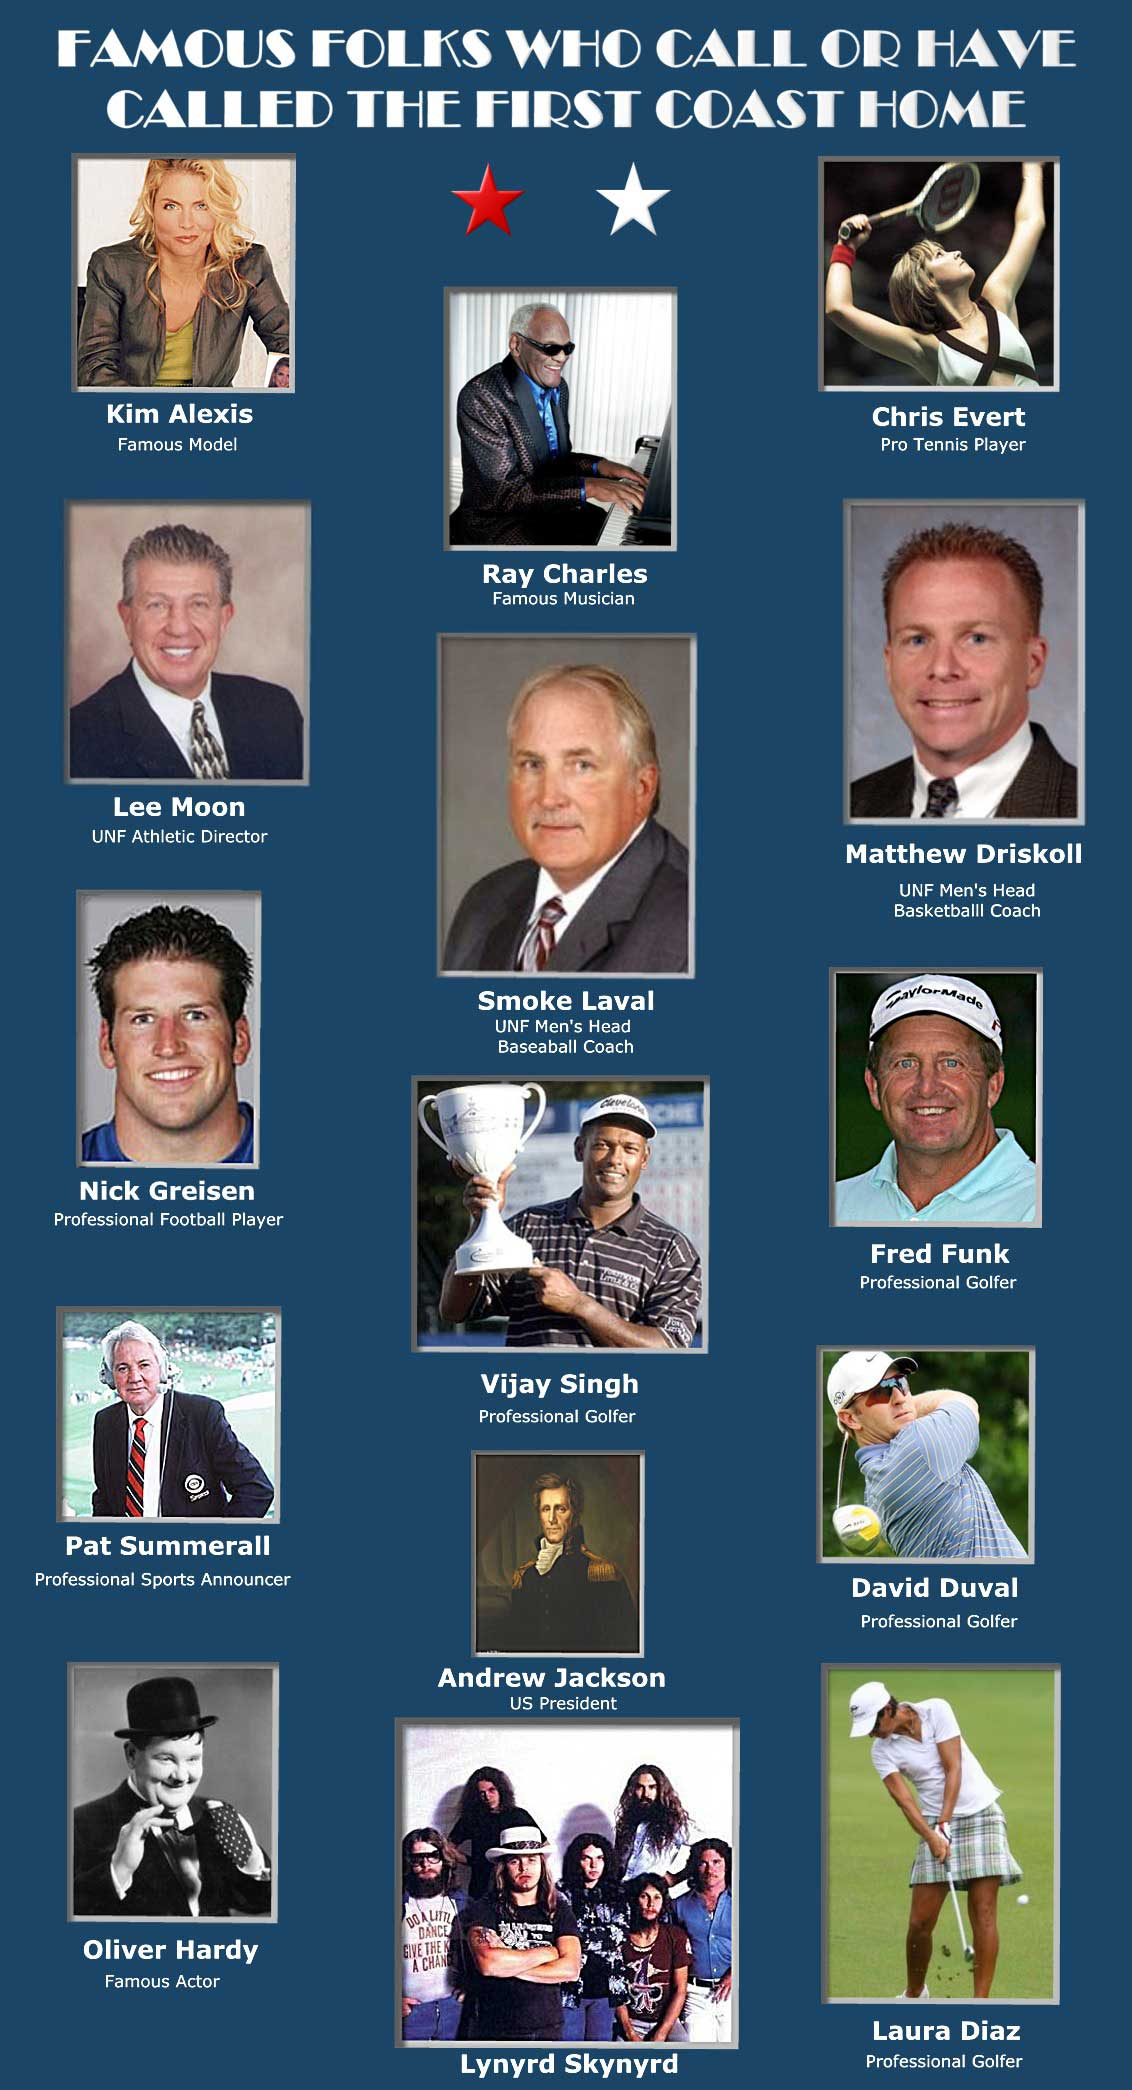 Famous Folks of the First Coast